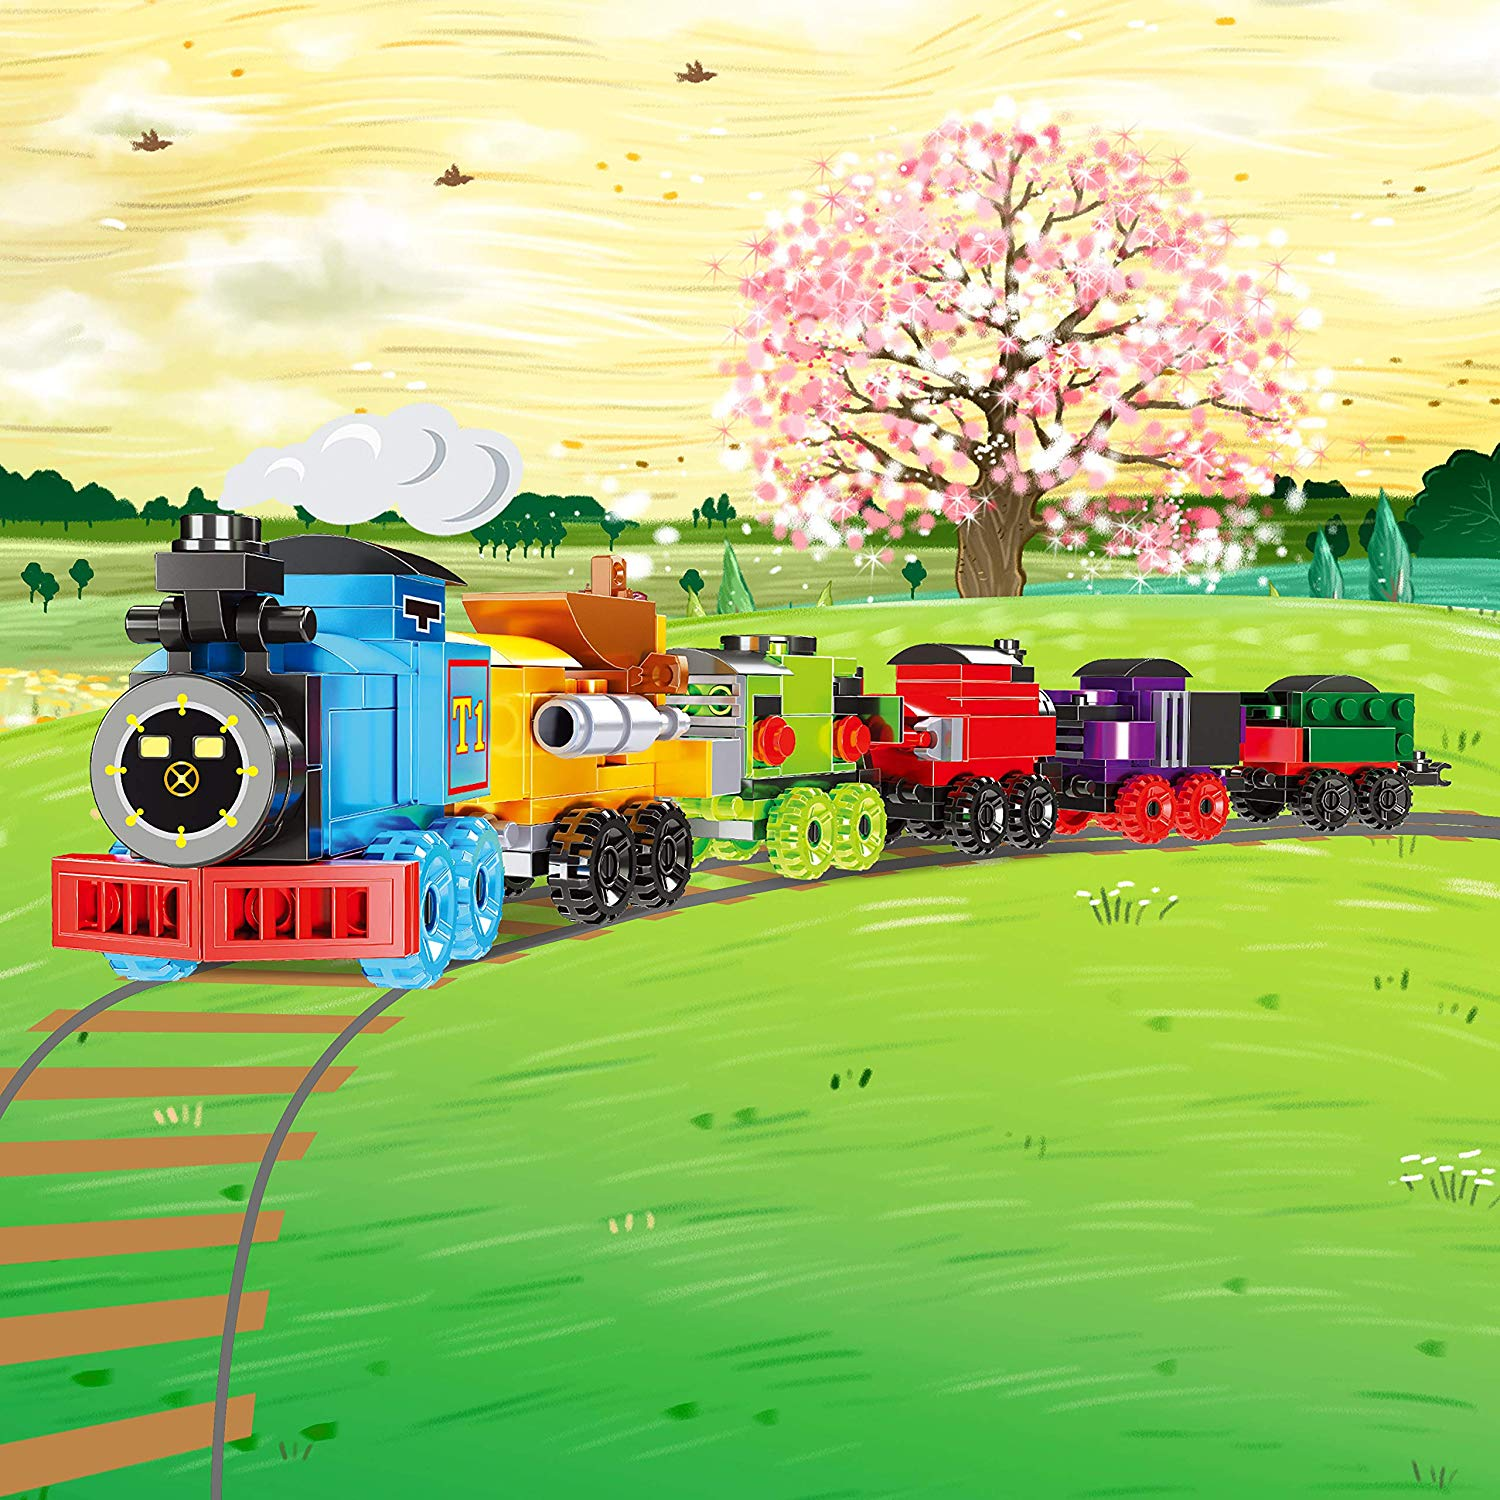 Prefilled Easter Eggs with Railway Engines